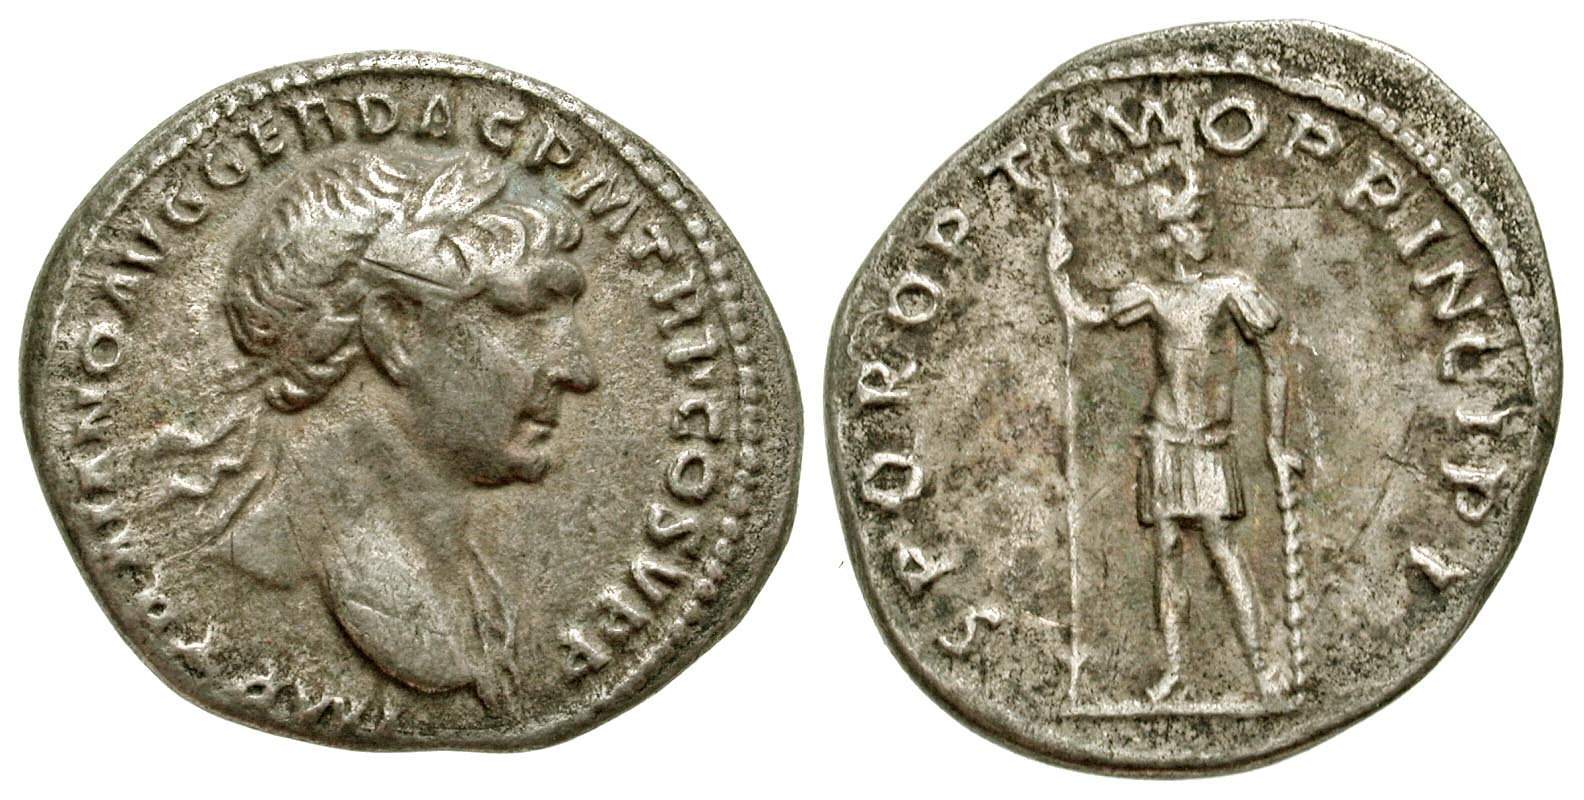 Trajan. A.D. 98-117. AR denarius. Rome mint, Struck A.D. 107. From the Tom Buggey Collection.